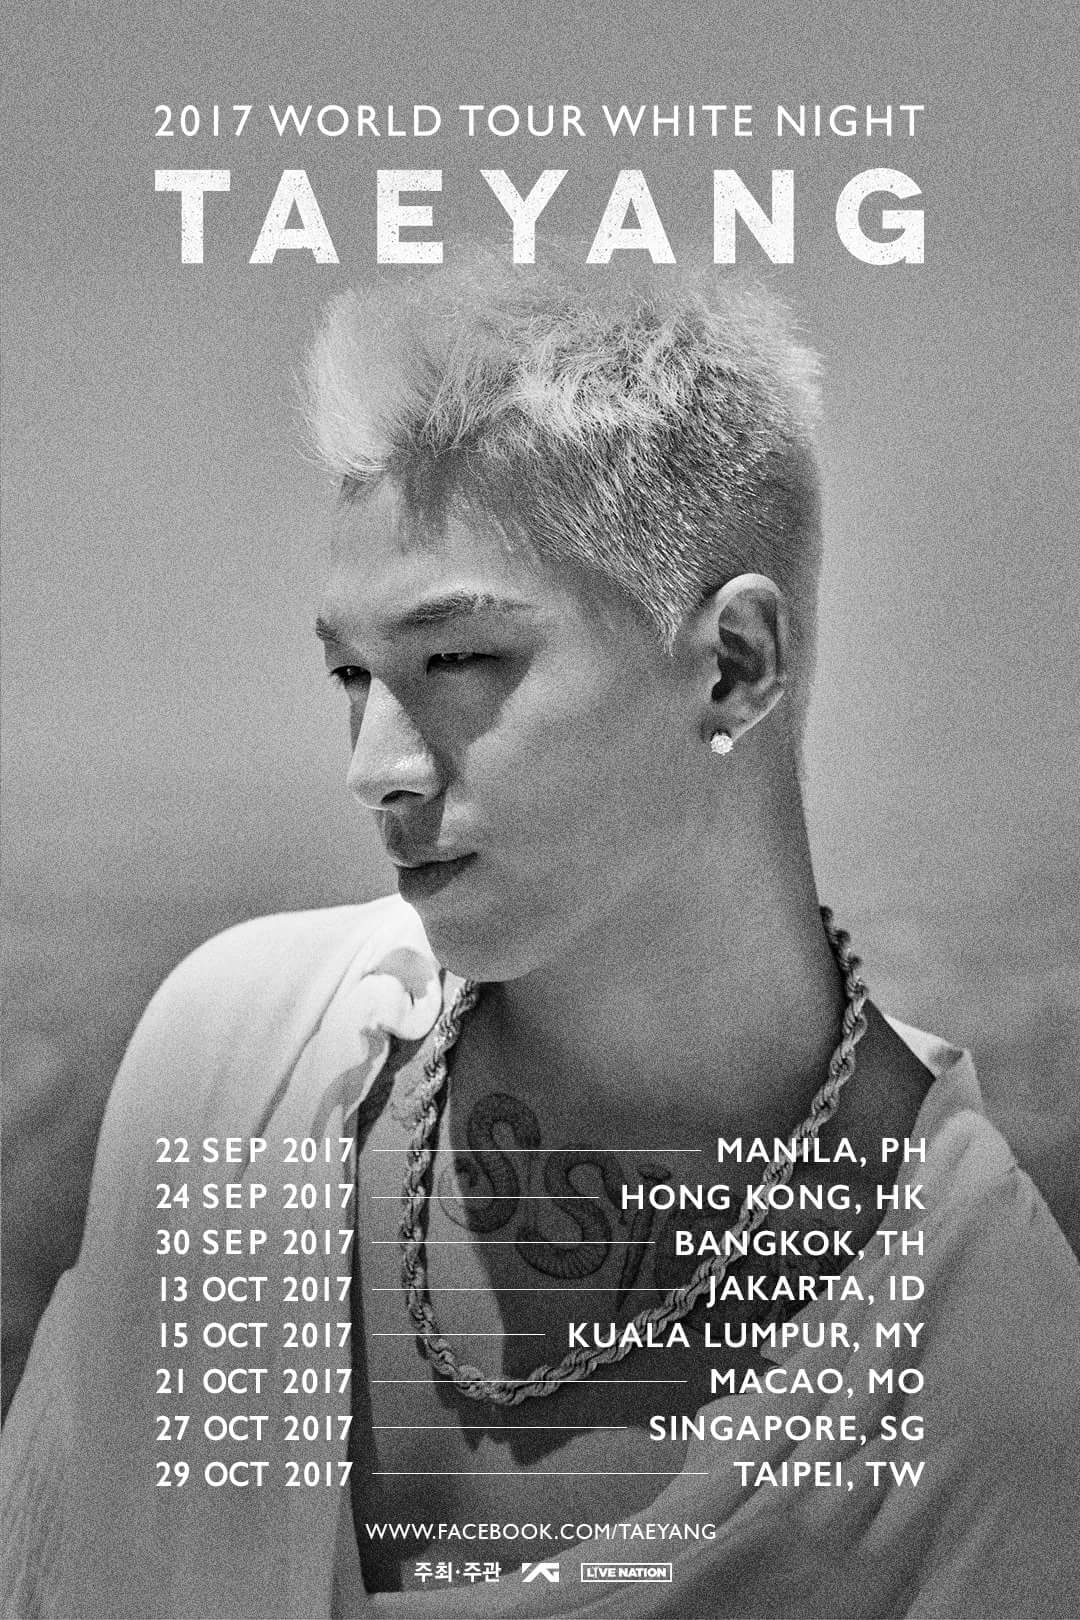 2017 Word Tour White Night Taeyang Live in Manila ...